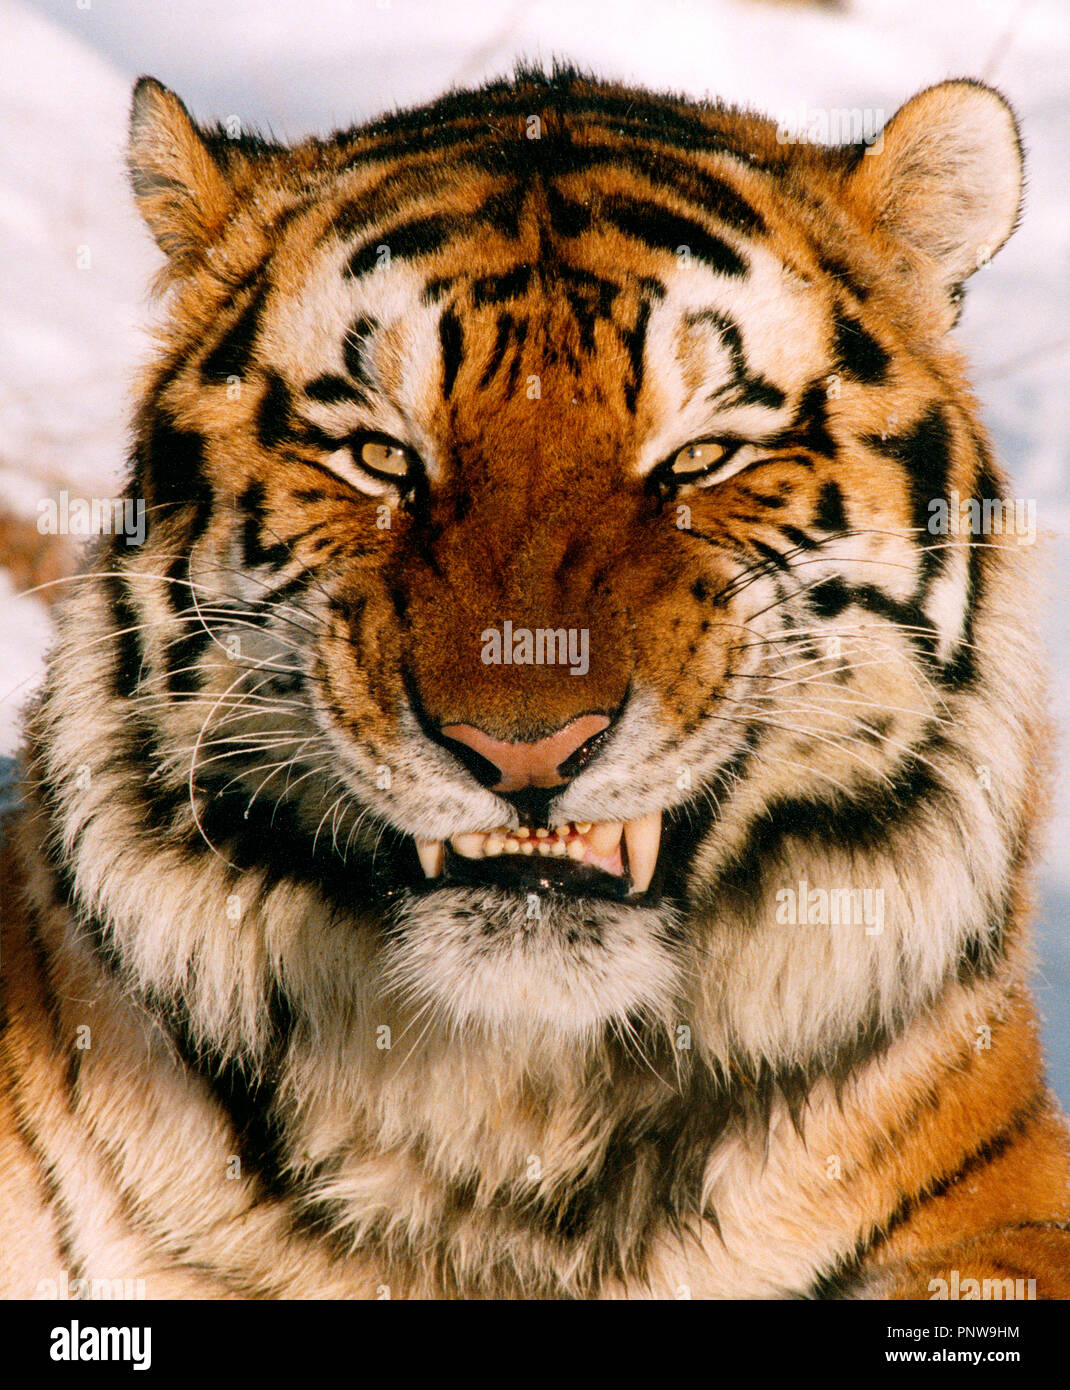 Outdoor close up portrait of fierce growling Siberian Tiger. Russia. - Stock Image